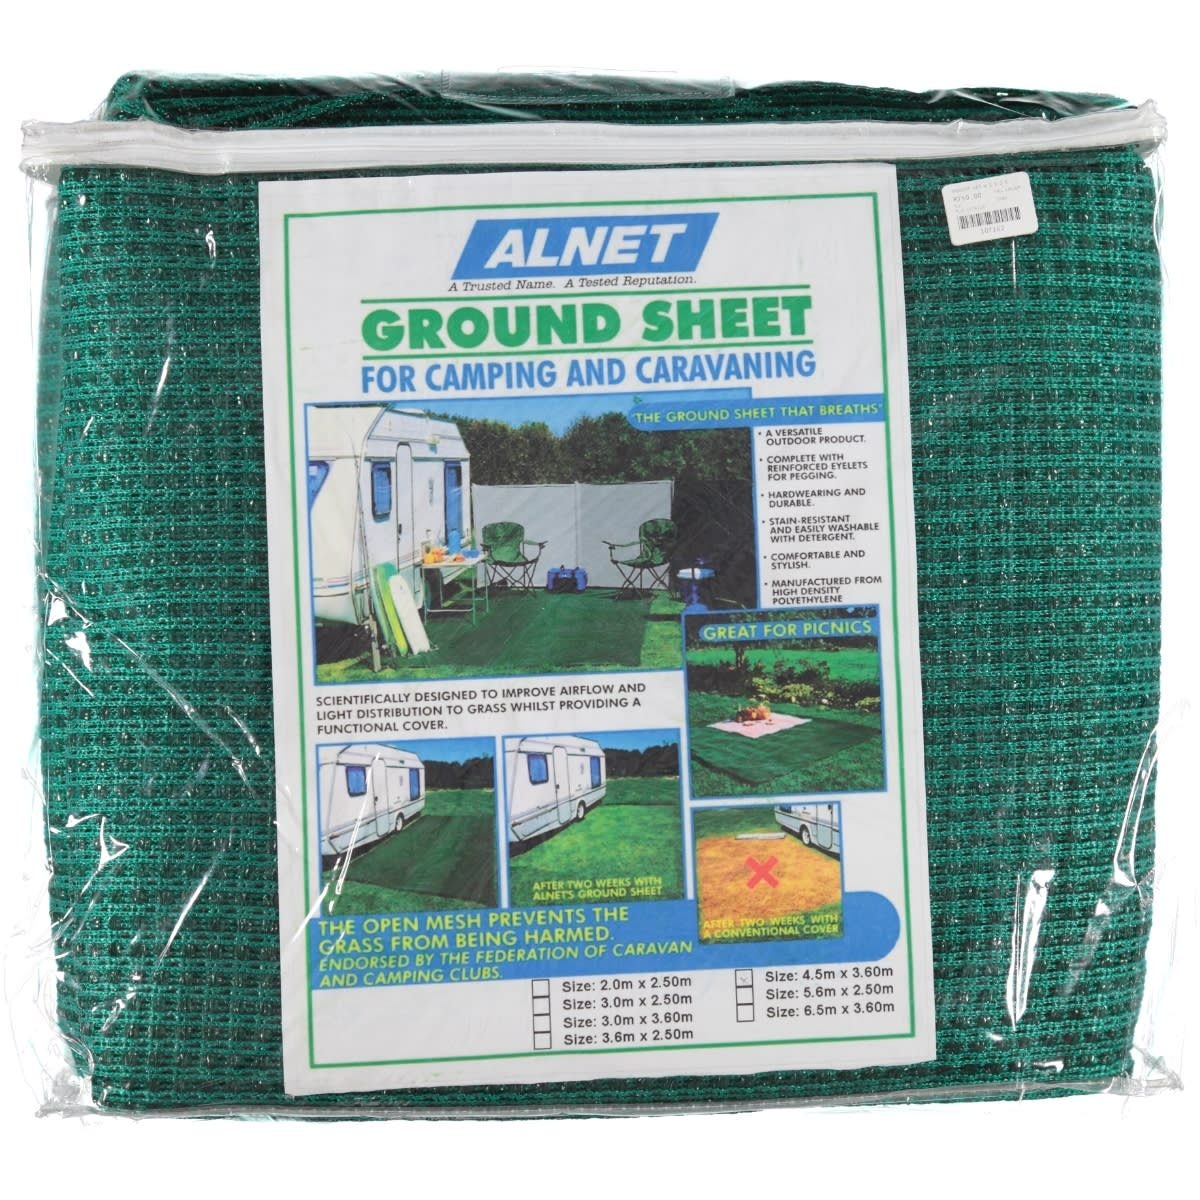 Alnet Netted Groundhseet 4.5x3.6